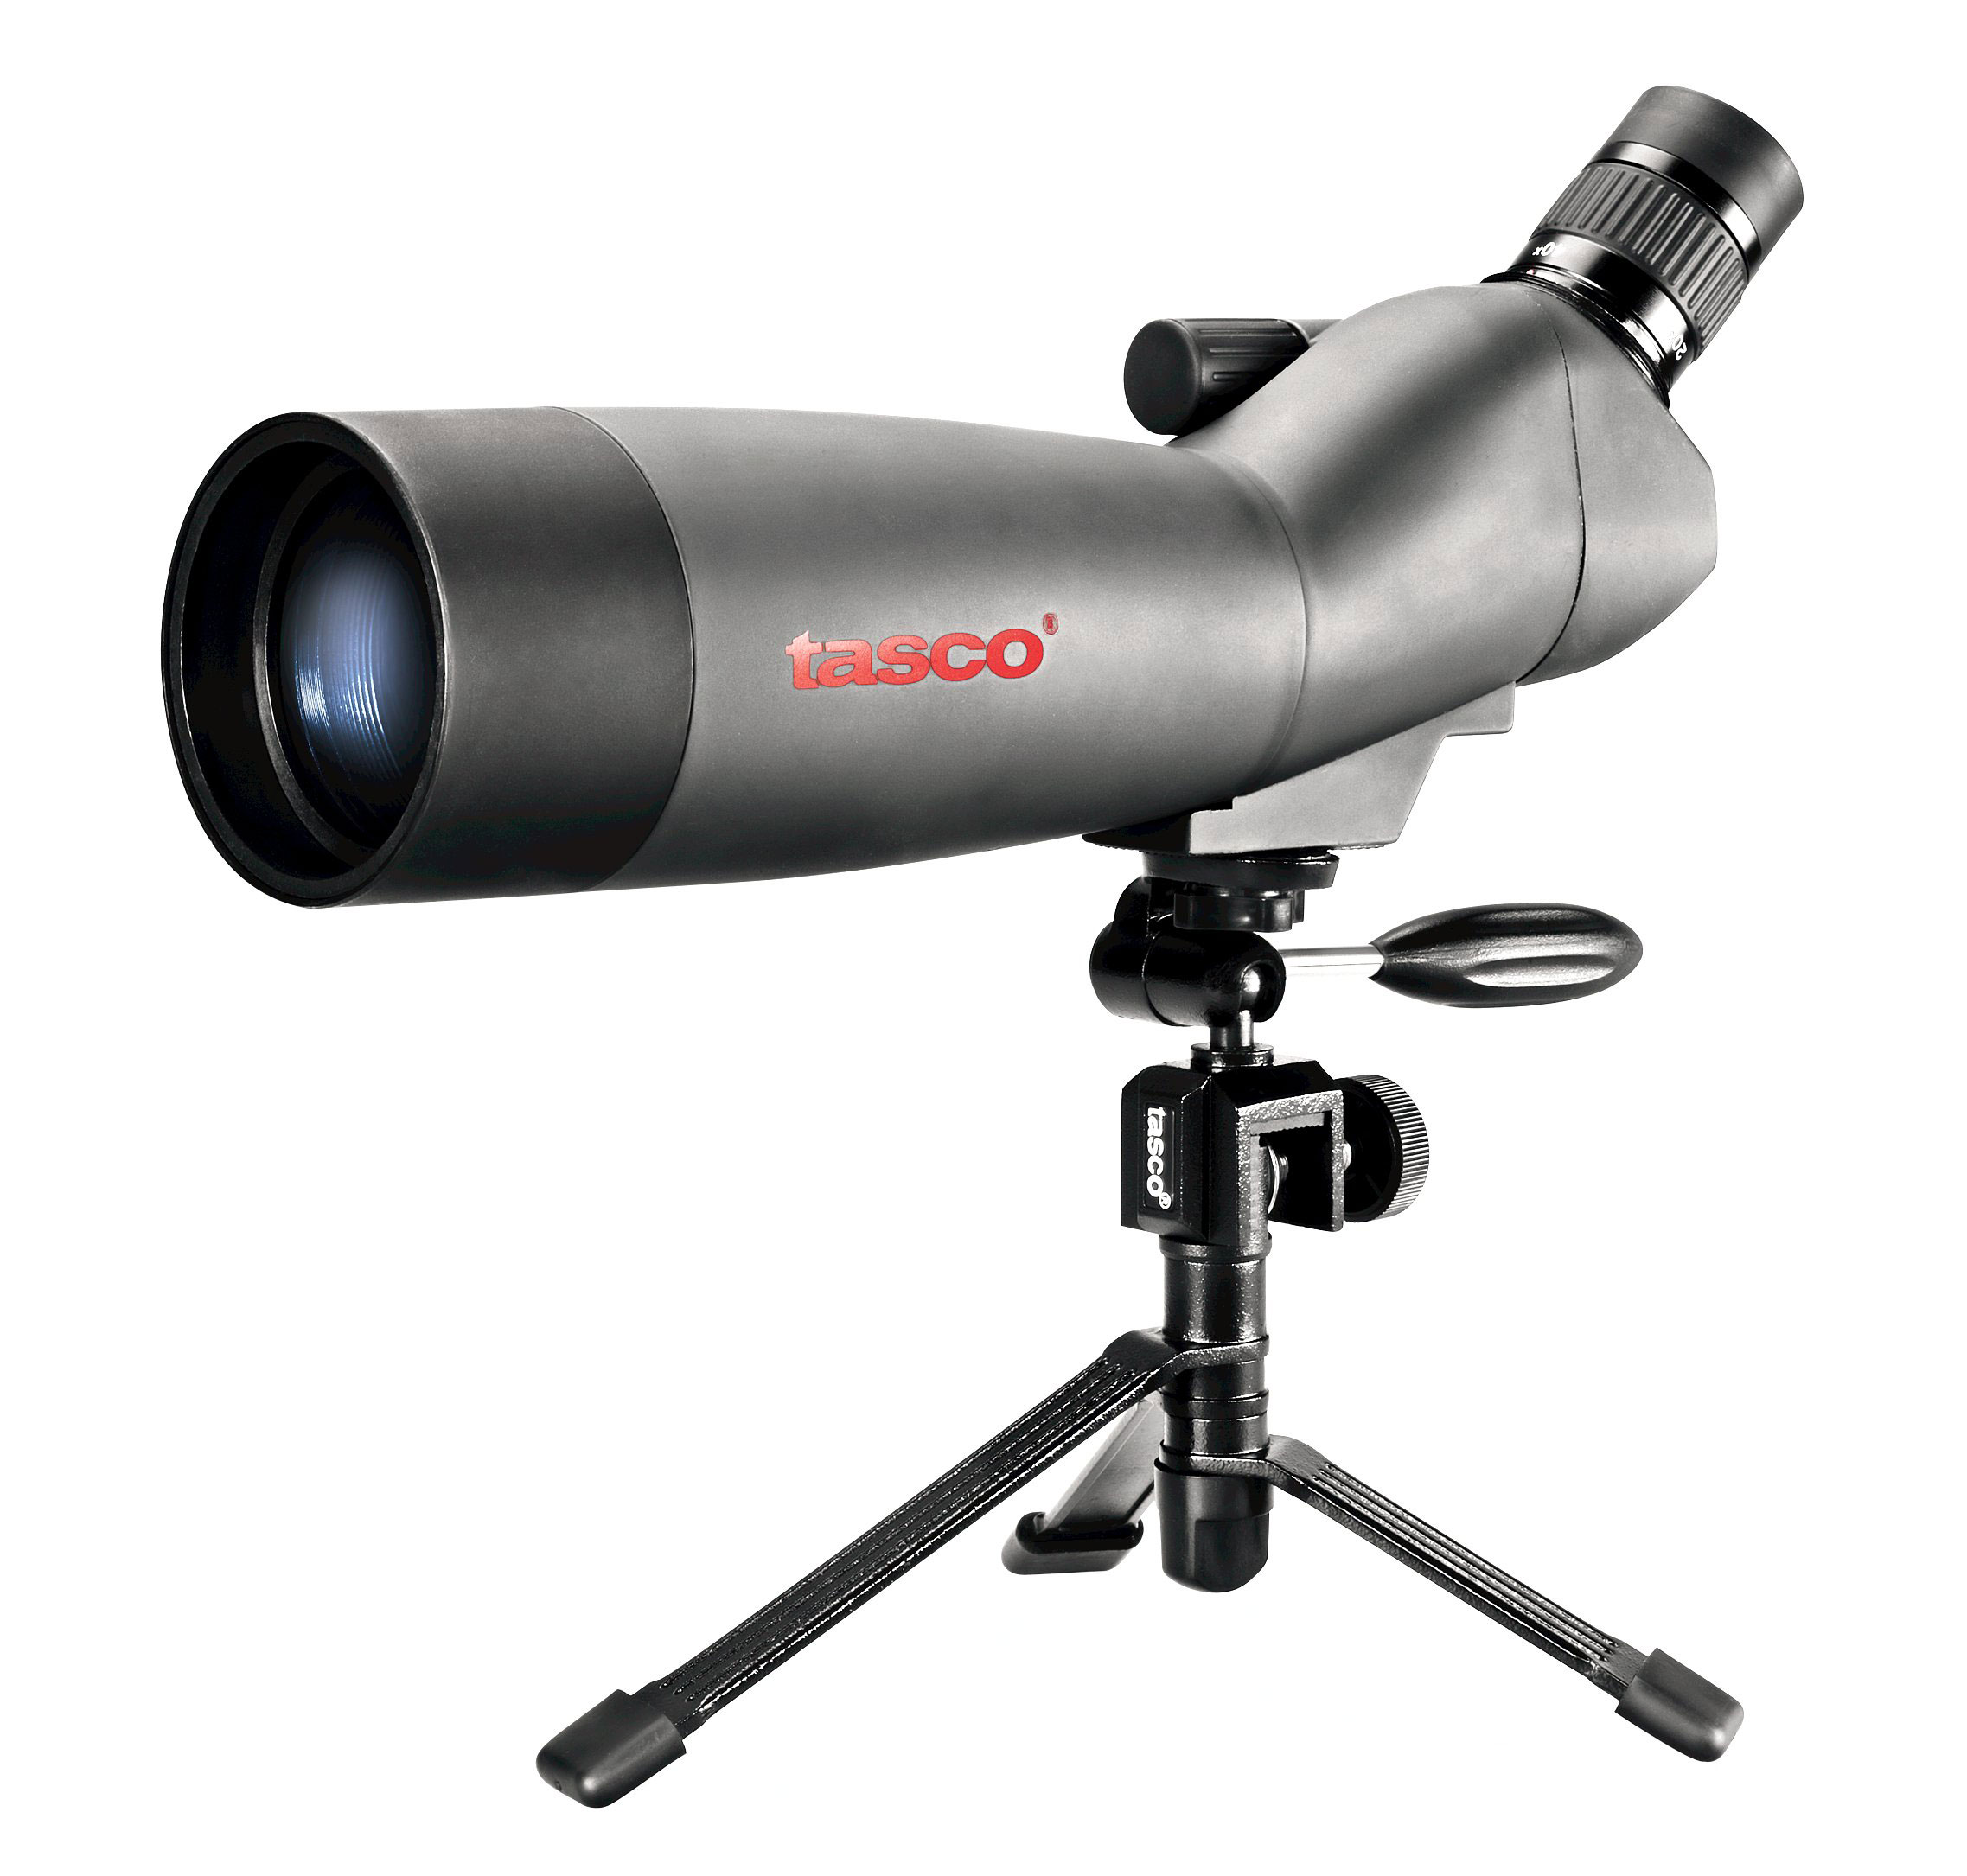 Reviews Ratings For Tasco 20 60X60 World Class Spotting Scope 60mm EP 45 With Tripod WC20606045 13 Page 1